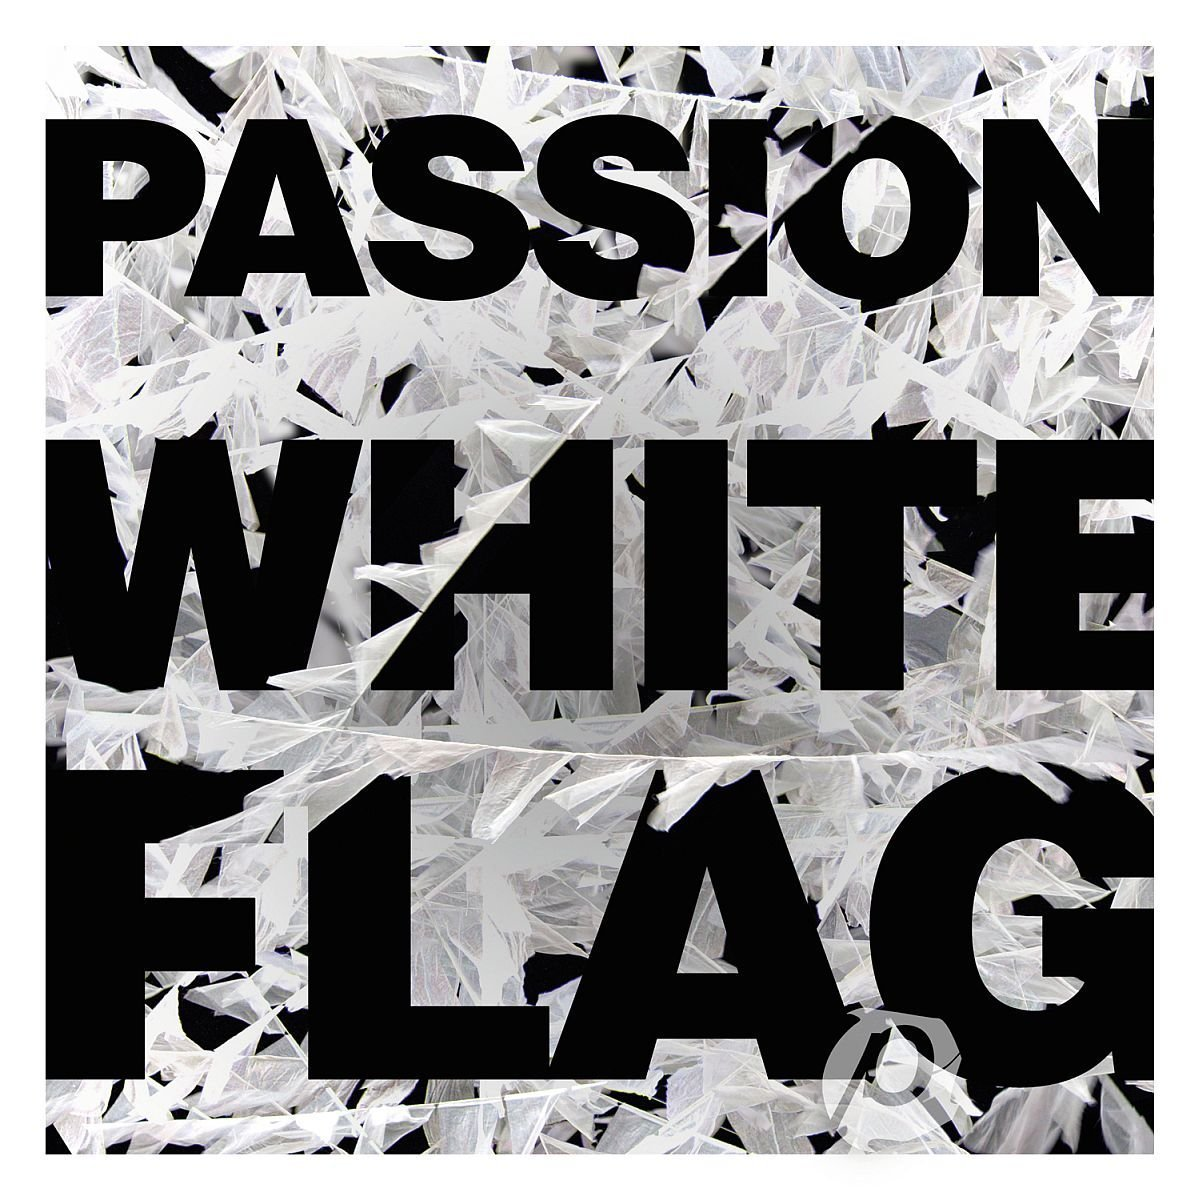 Passion white flag by various artist